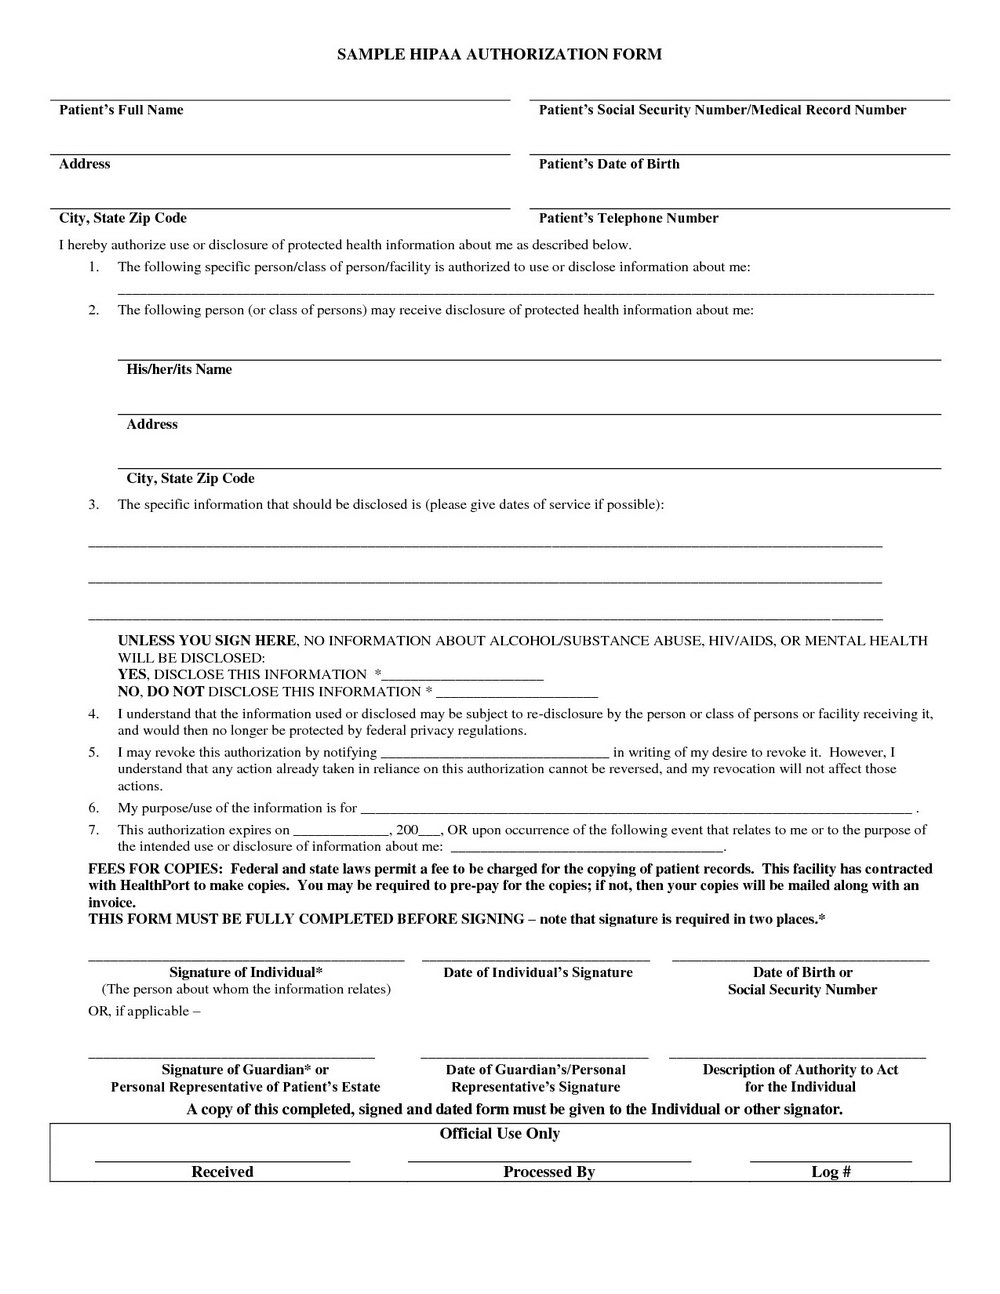 Hipaa Policy Form For Patients